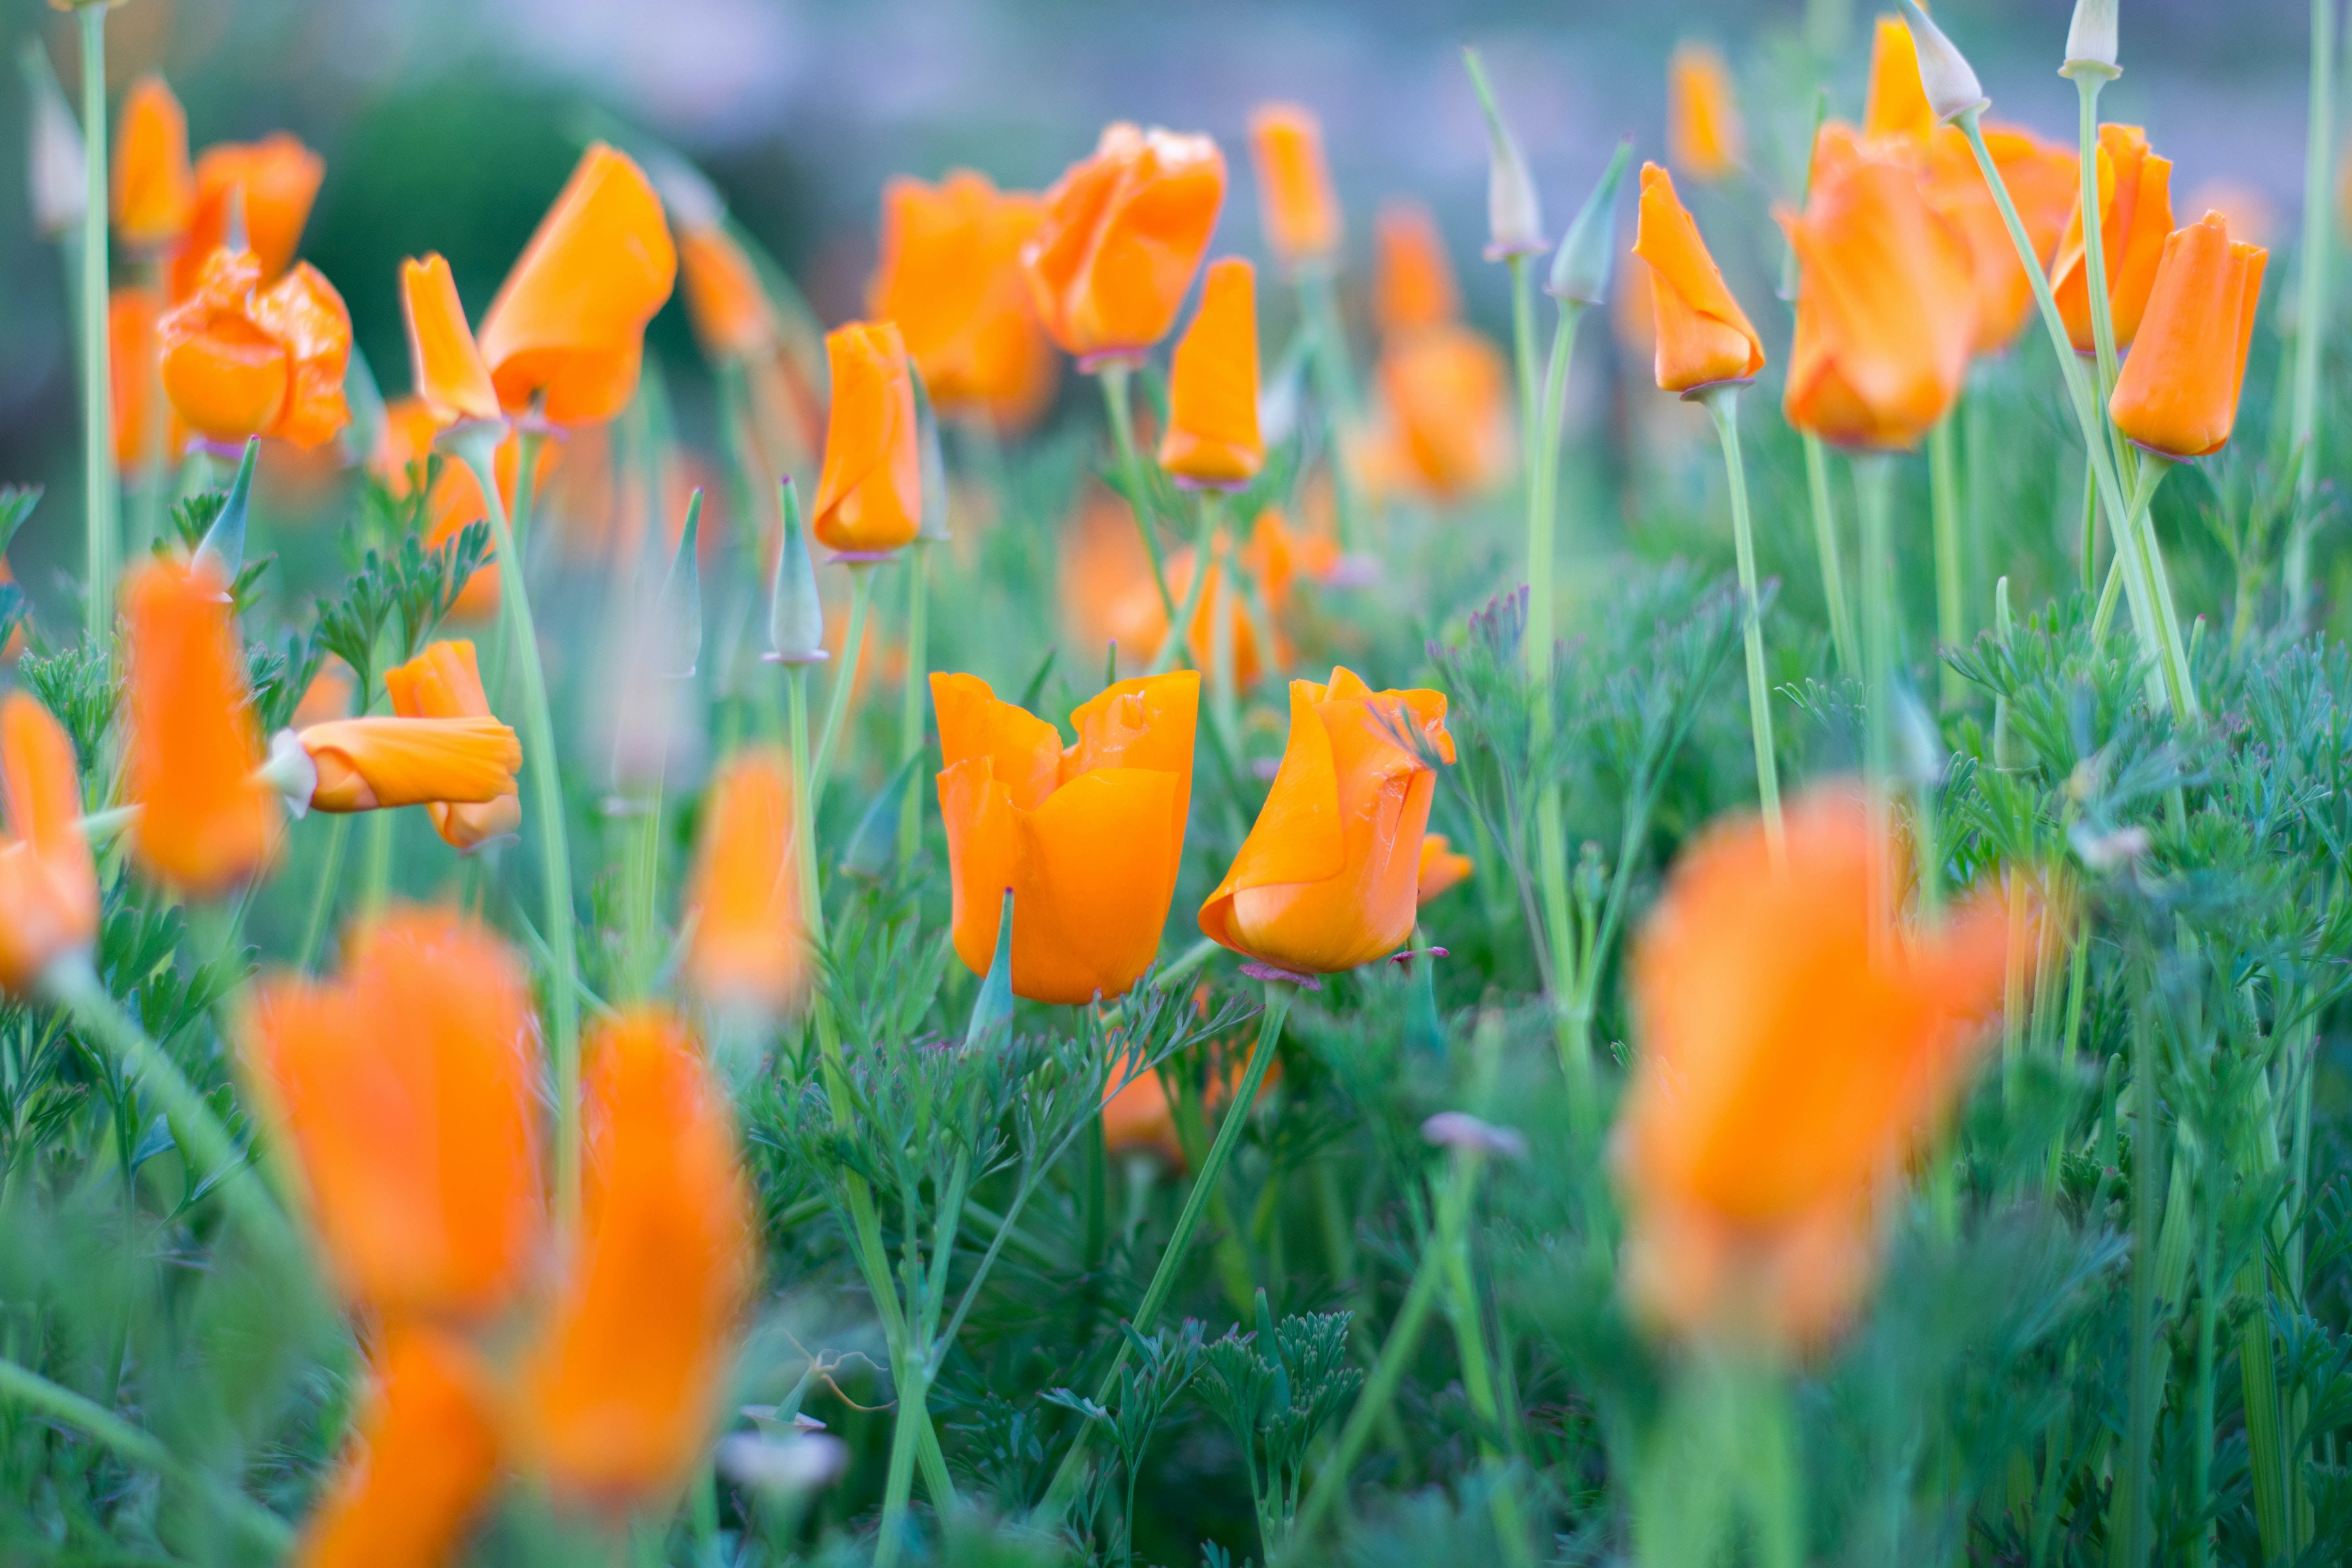 shallow focus photography of orange tulips